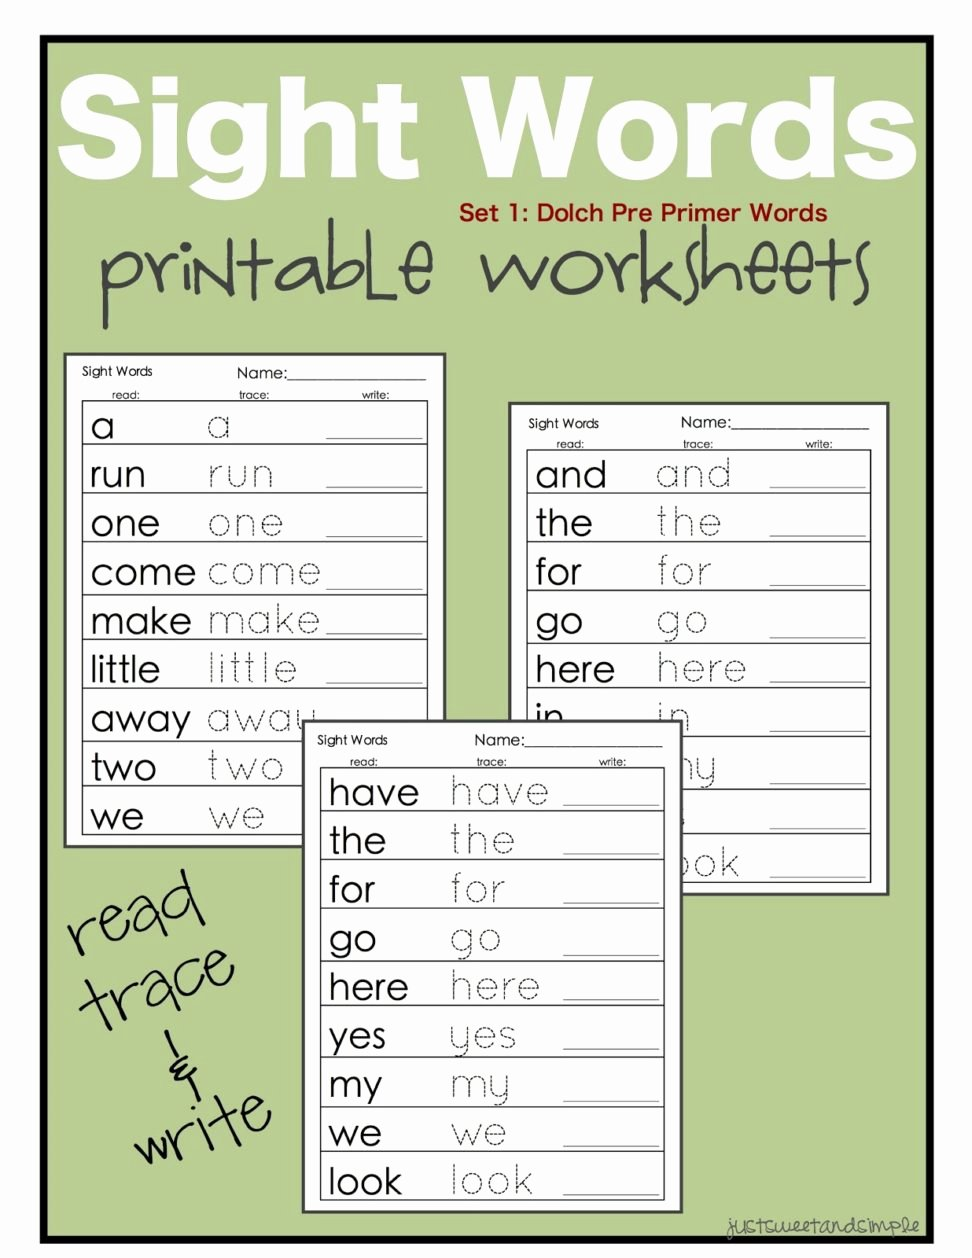 Sight Words Worksheet for Kindergarten Awesome Free Printable Kindergarten Sight Words Worksheets